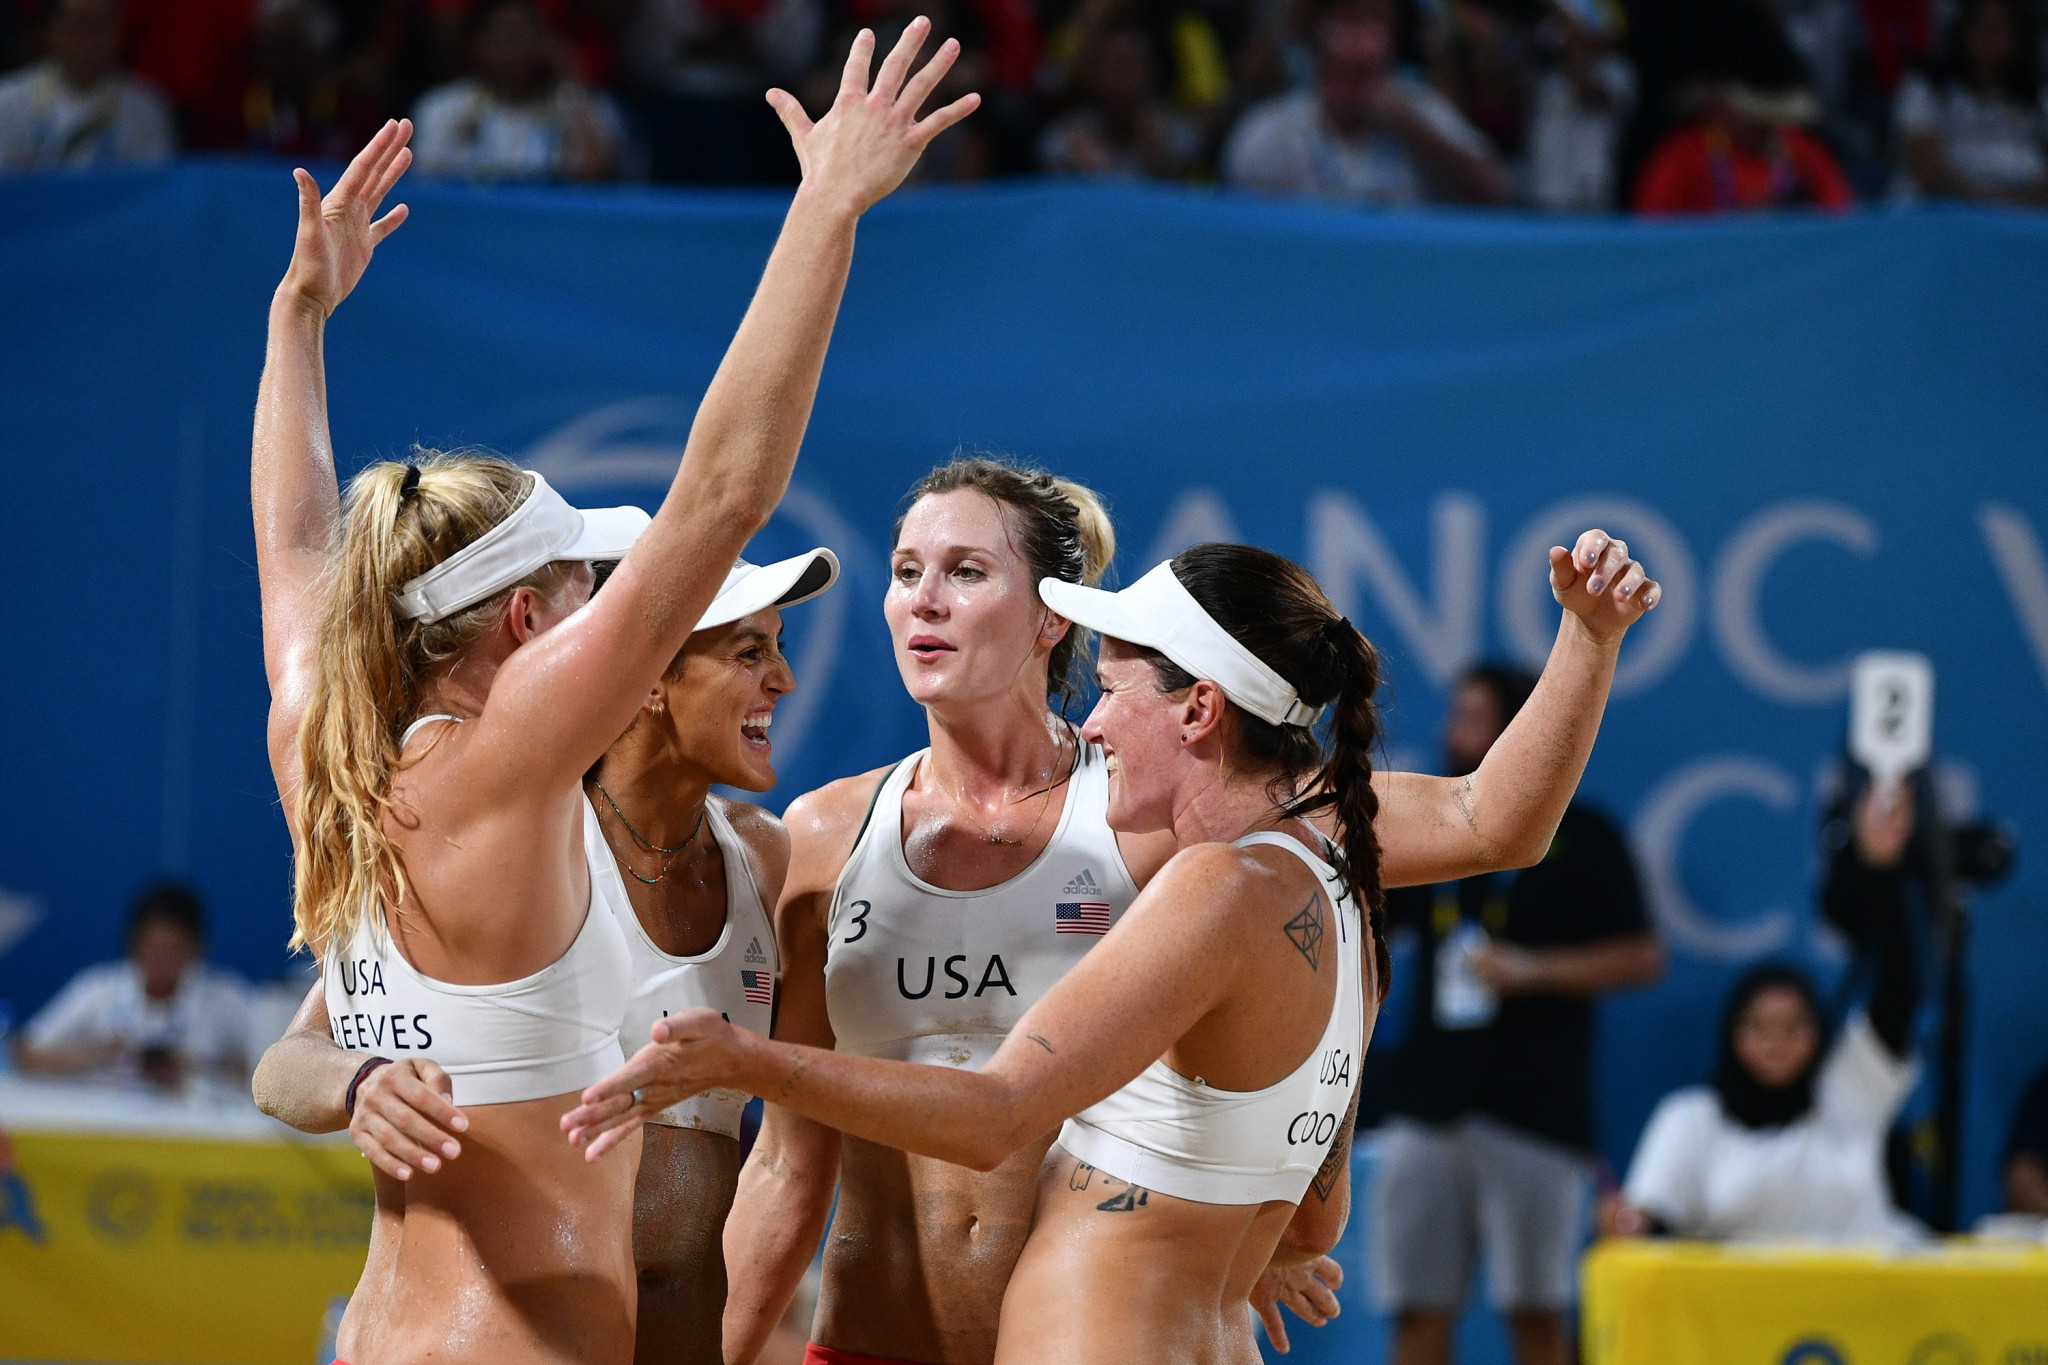 The United States beat Brazil in the women's final ©ANOC